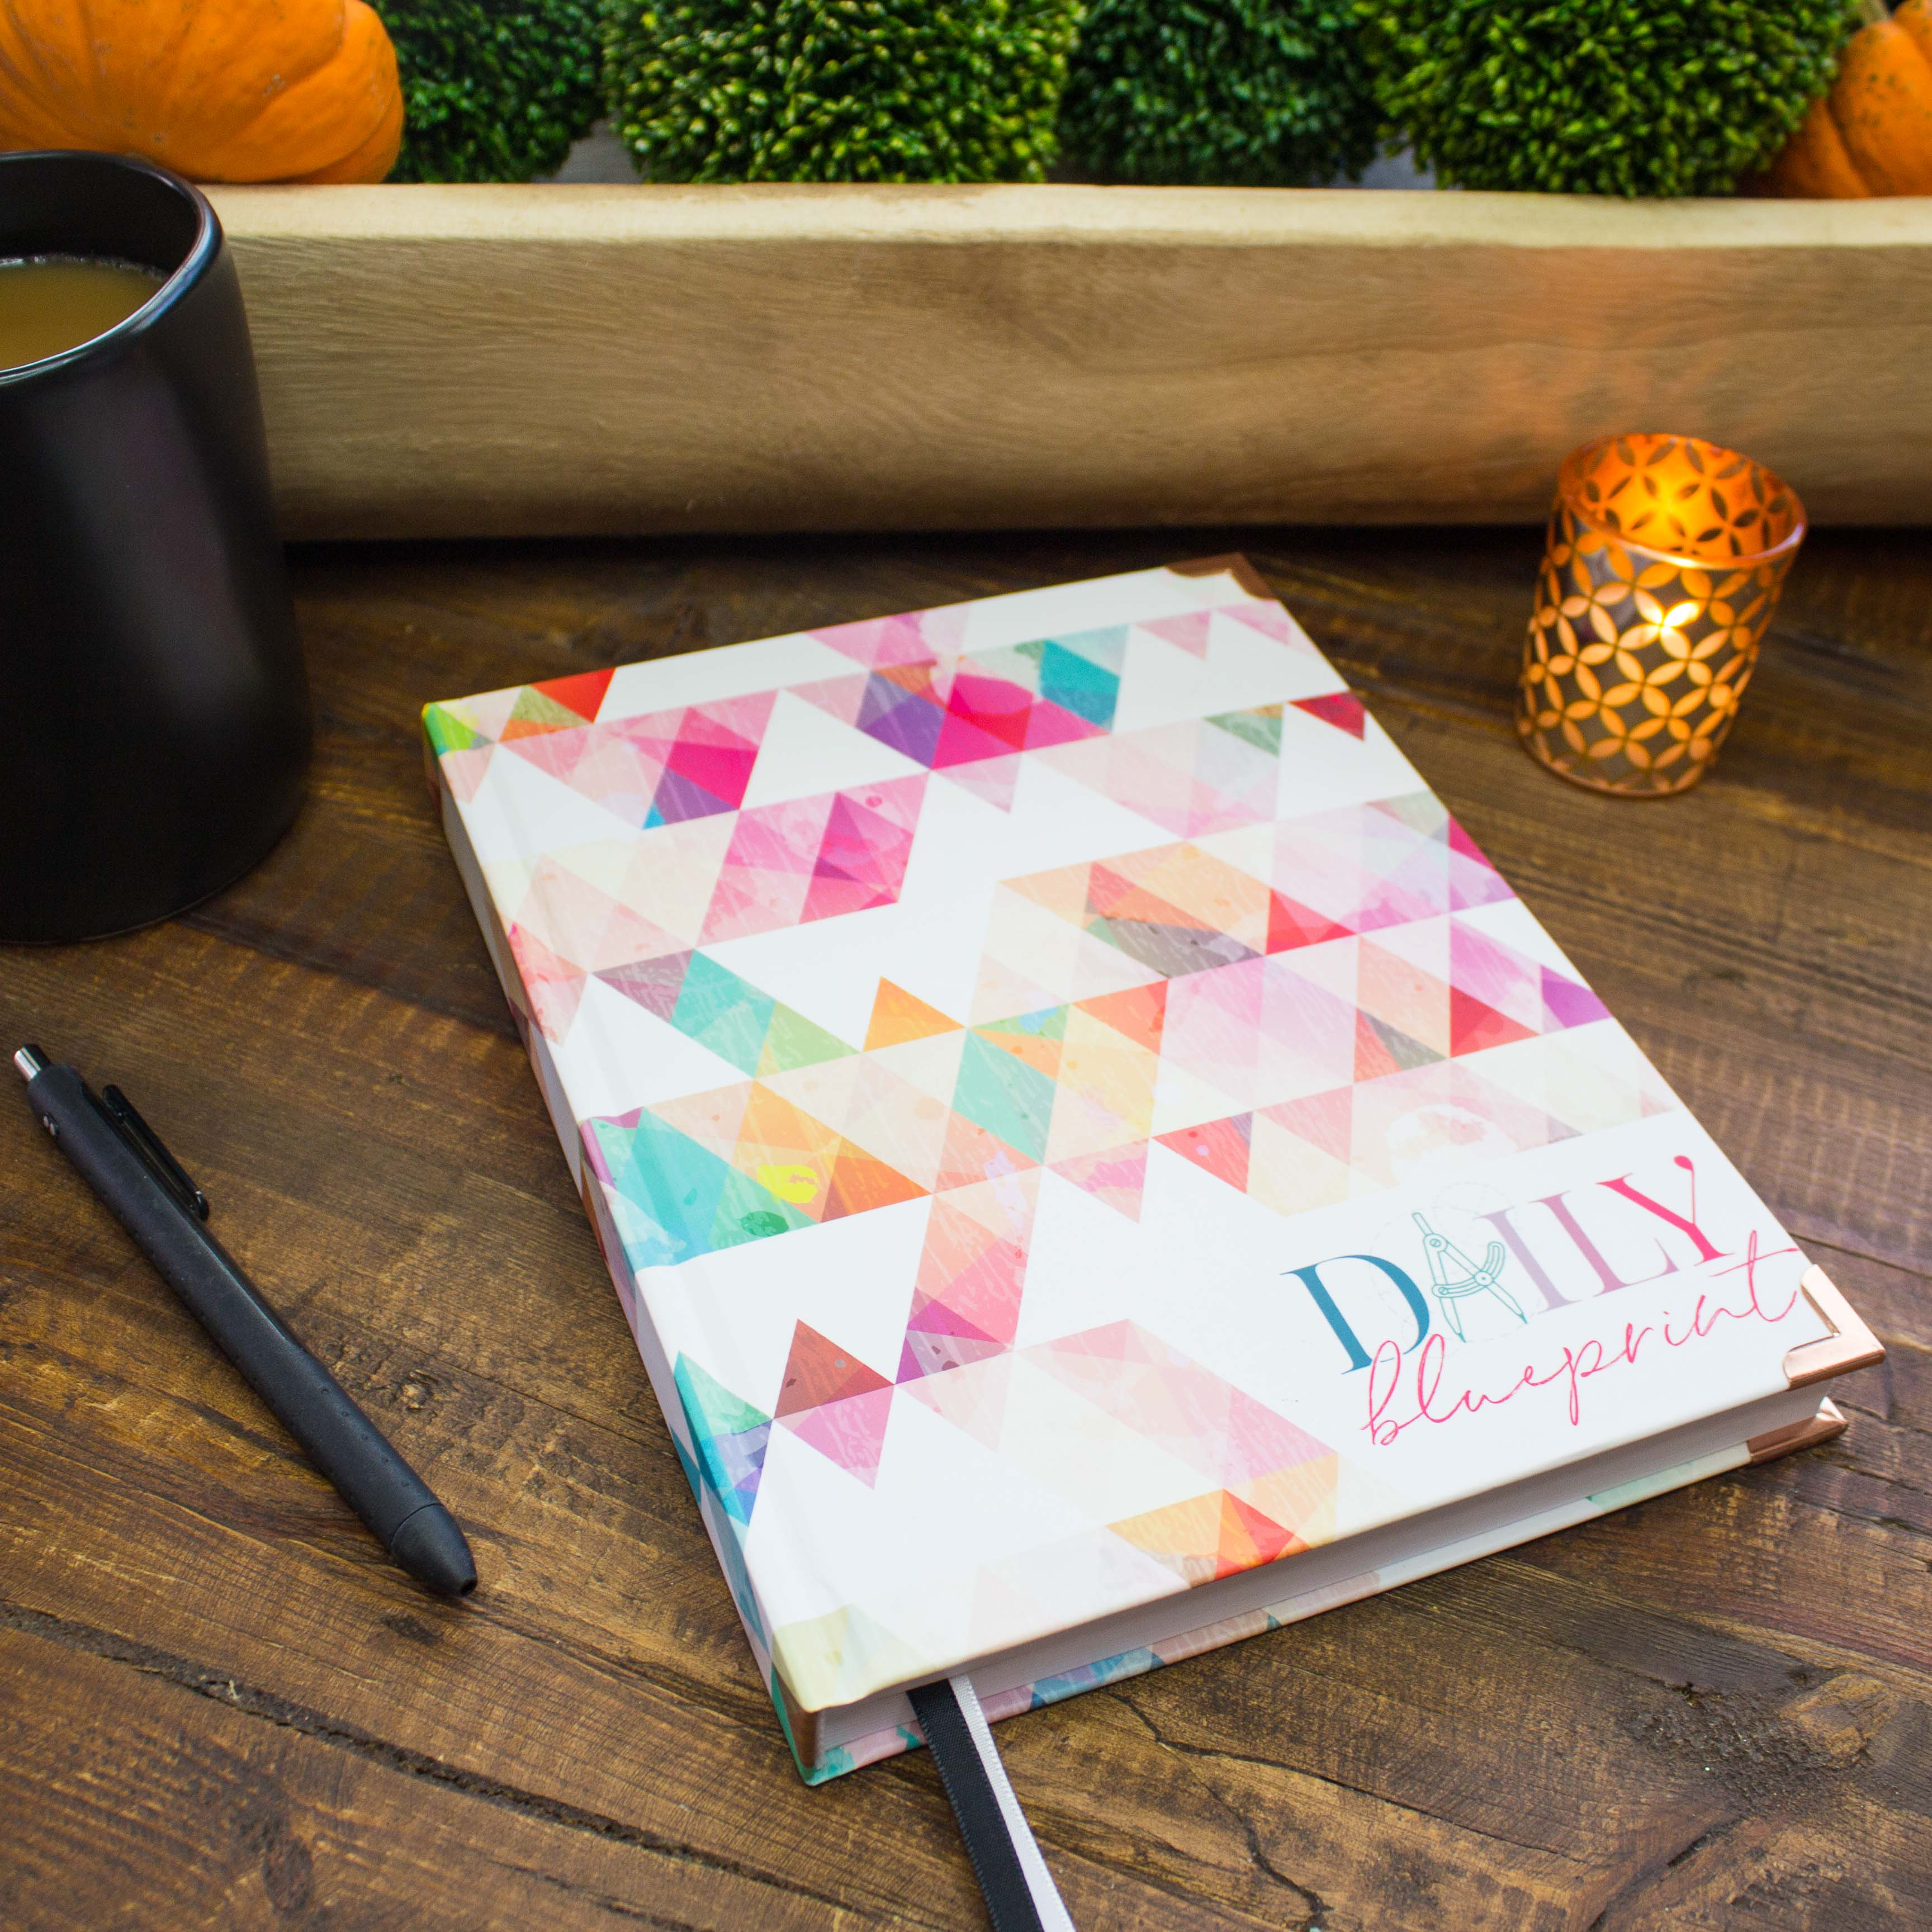 Planner Debut Daily Blueprint The Teaching Texan (1 of 1)-10